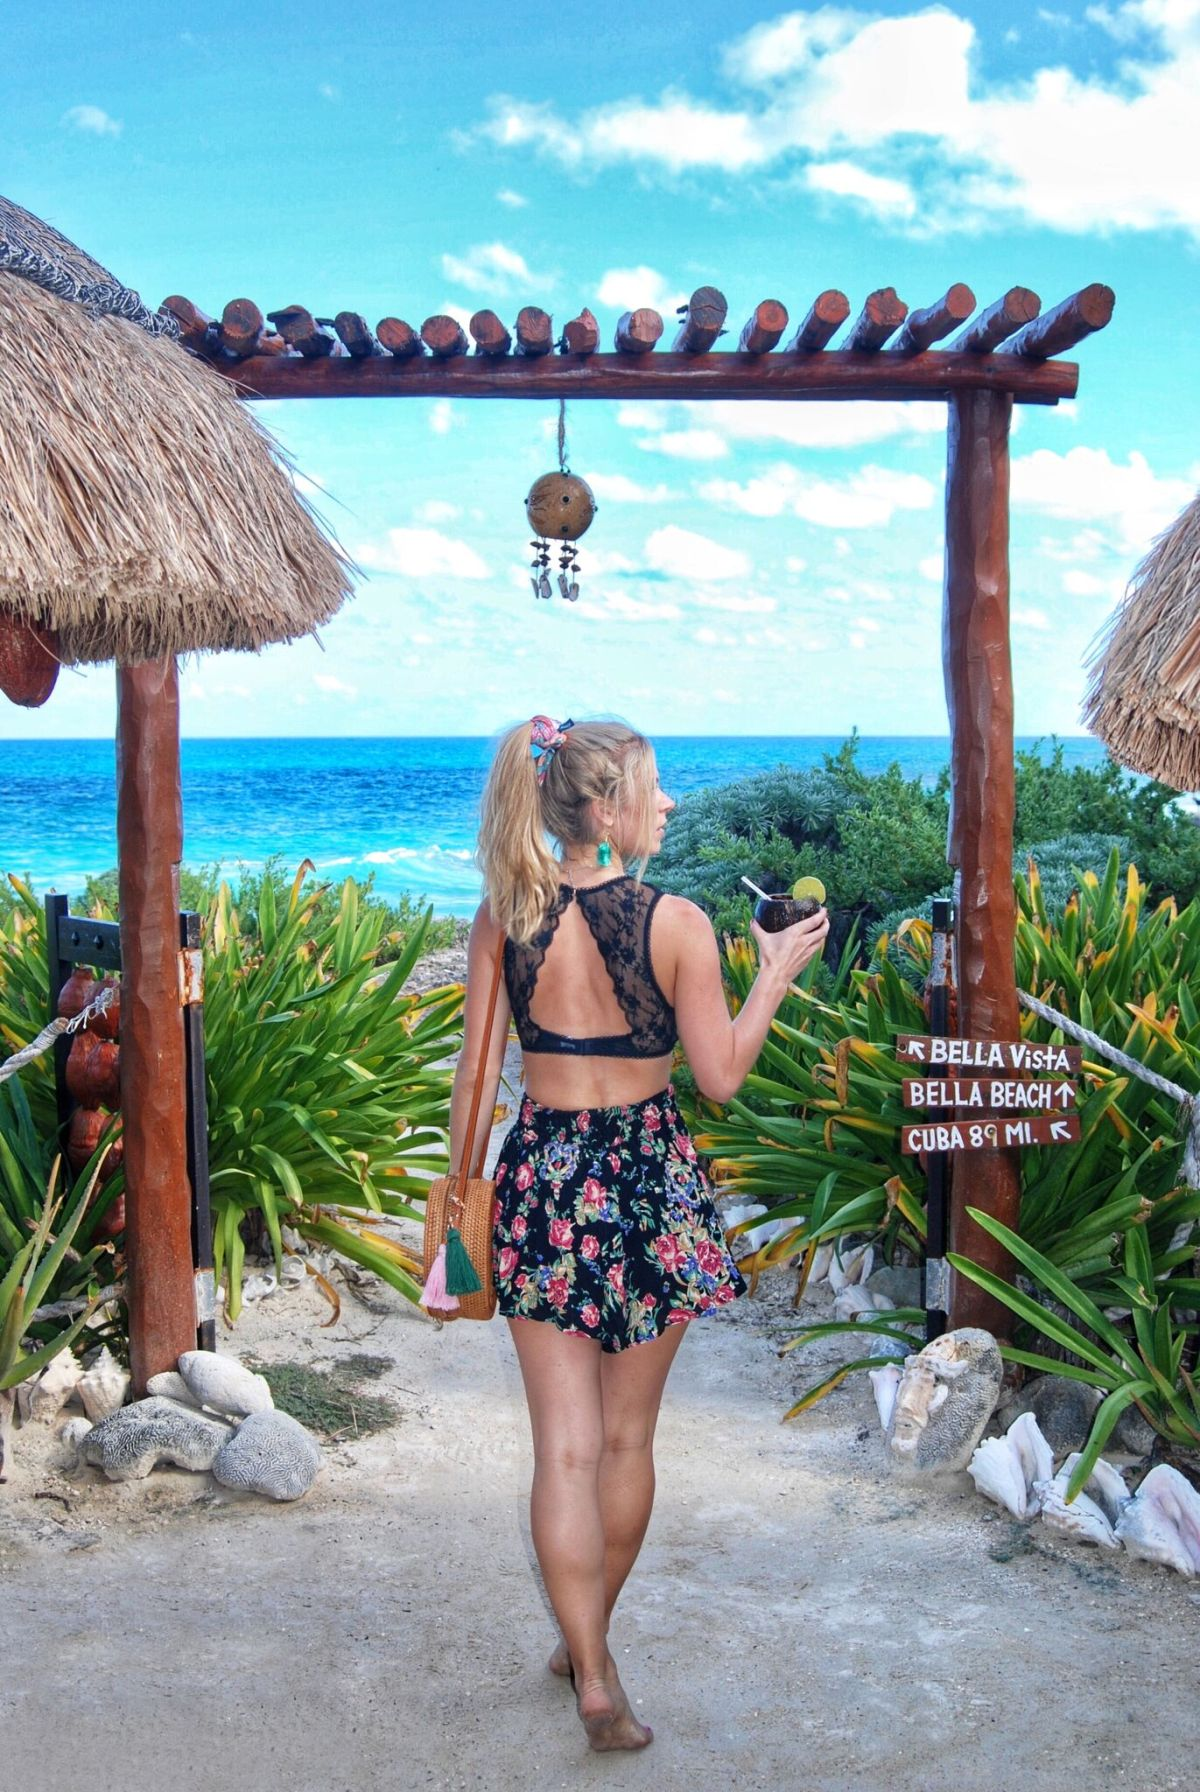 Isla Mujeres, Mexico: An Authentic Island Experience